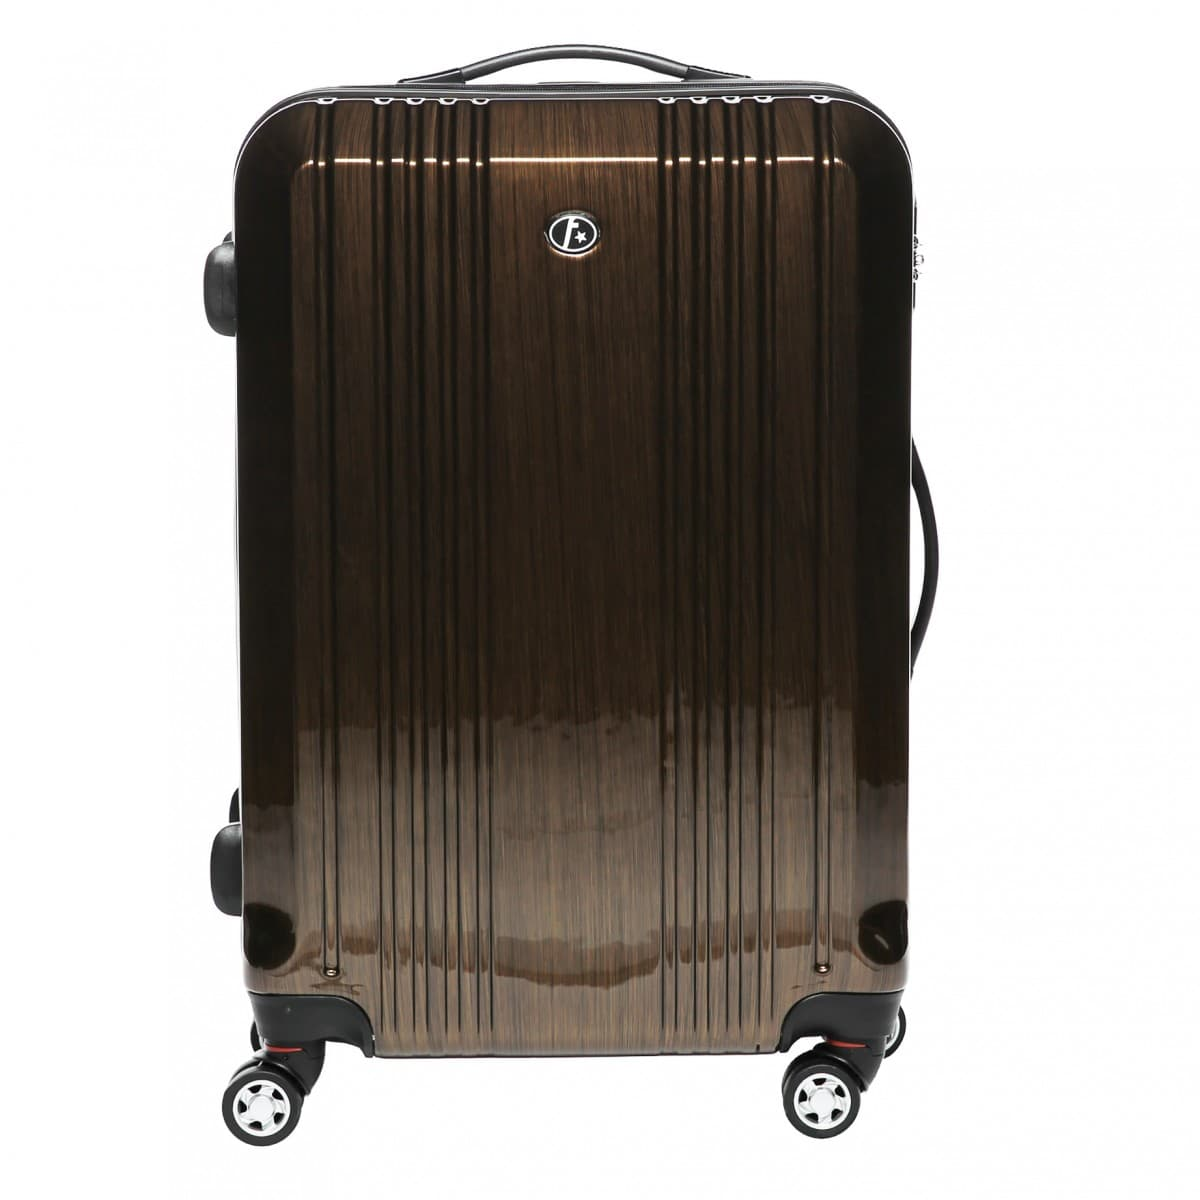 Trolley Suitcases - 304